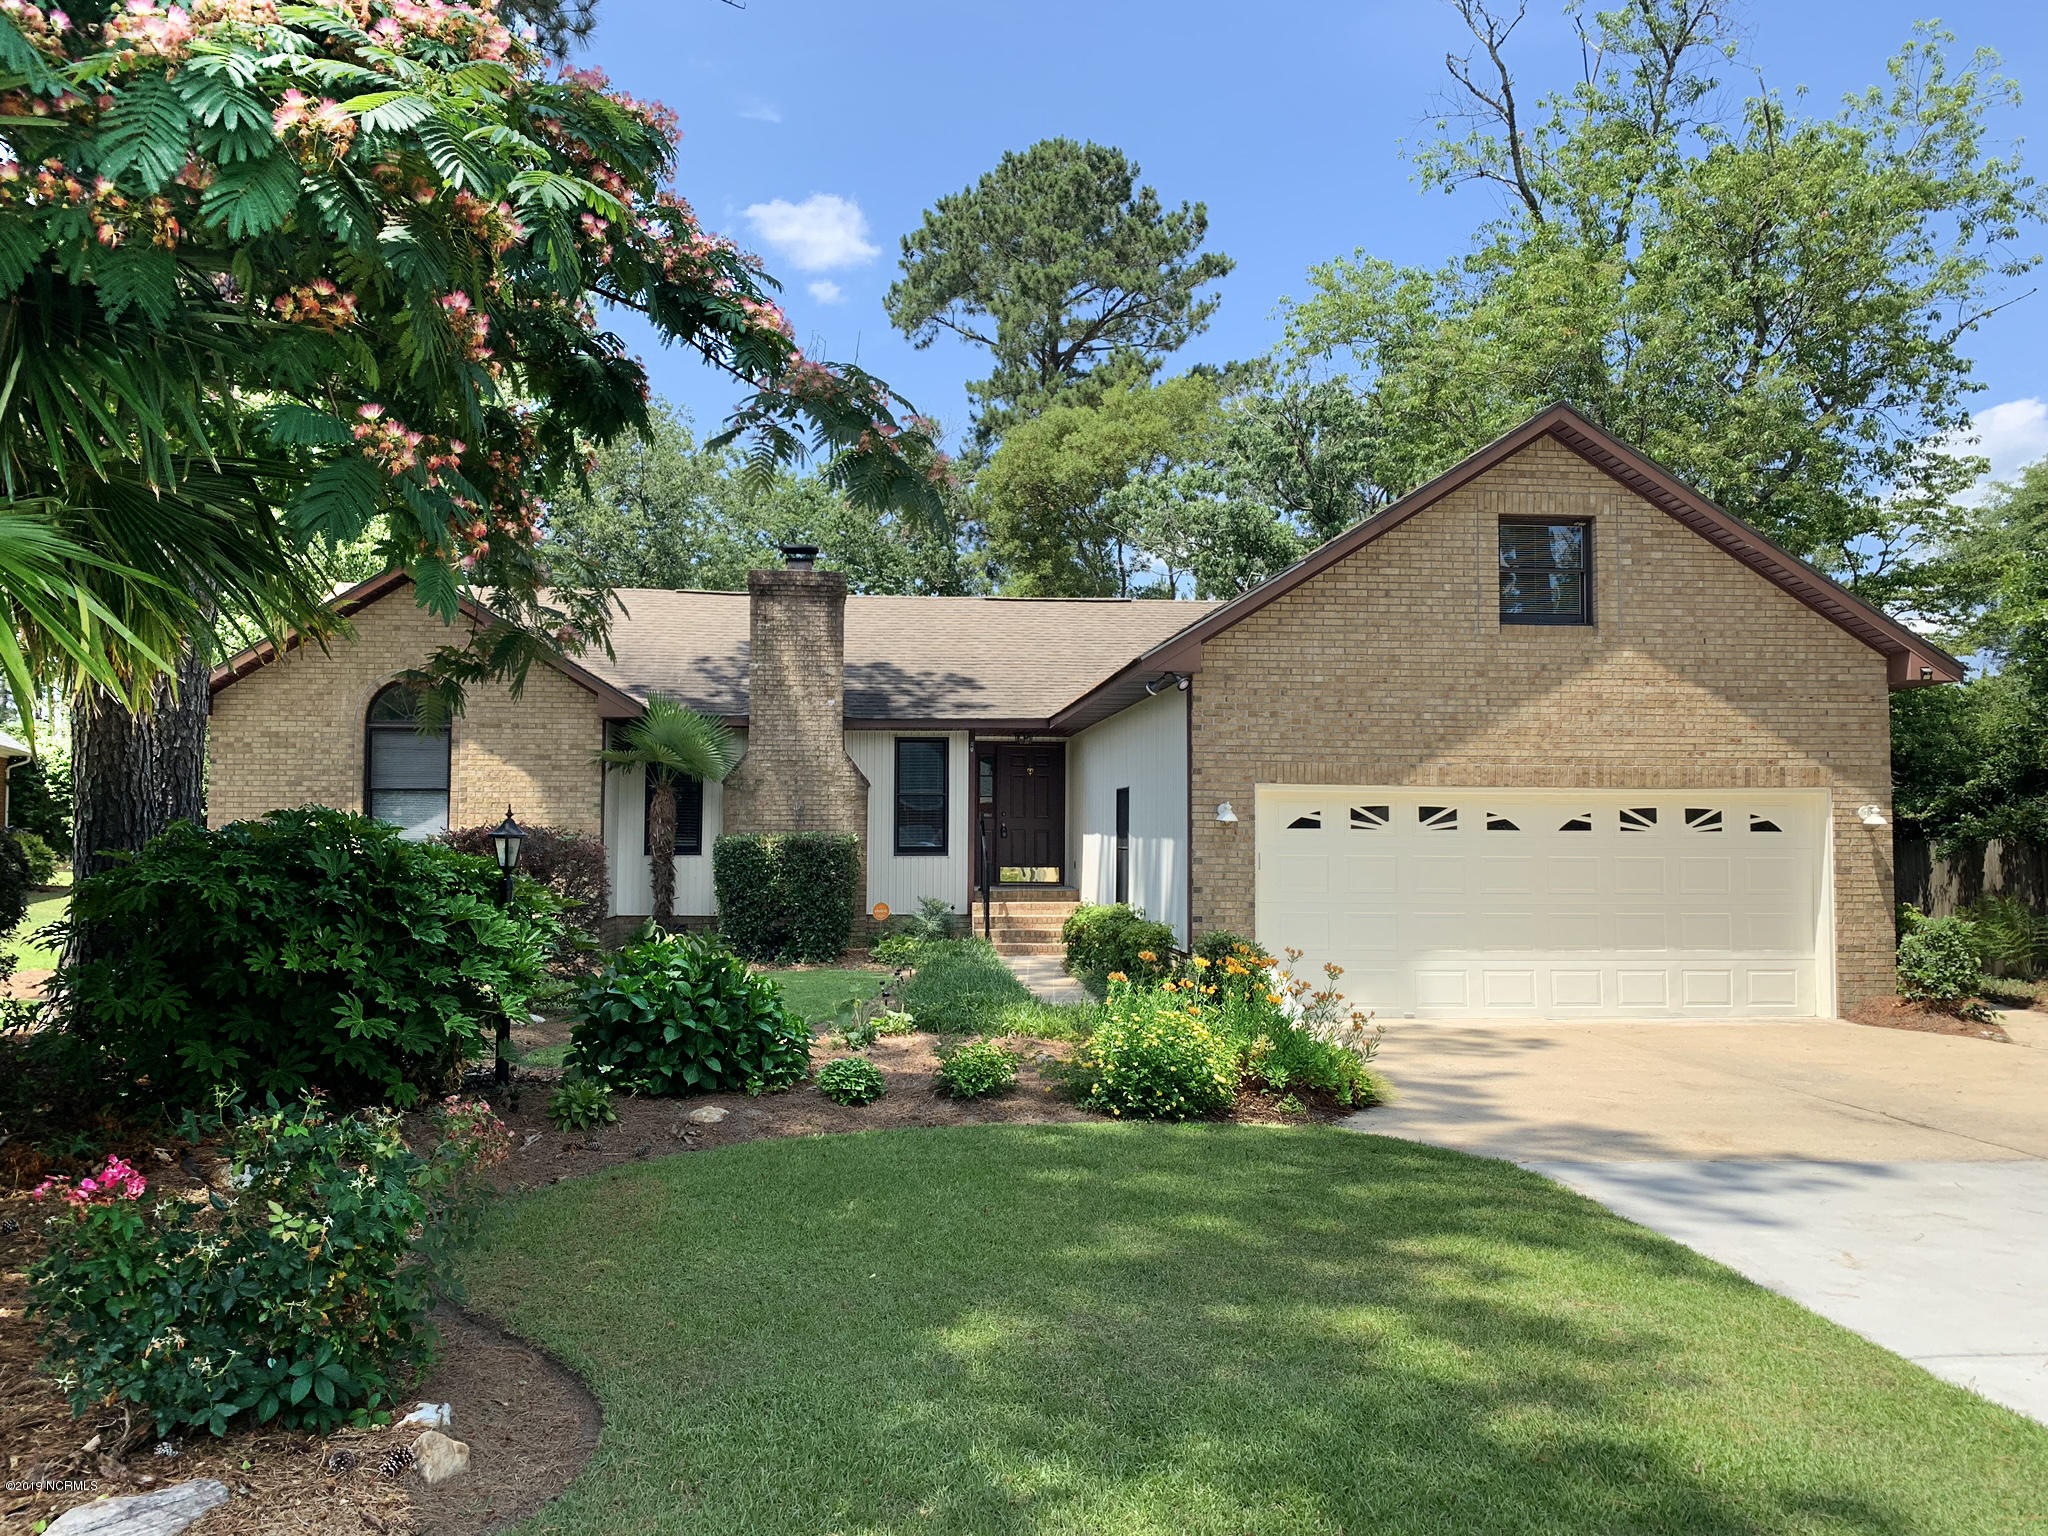 102 Grant Court, New Bern, North Carolina 28562, 3 Bedrooms Bedrooms, 10 Rooms Rooms,2 BathroomsBathrooms,Single family residence,For sale,Grant,100154810